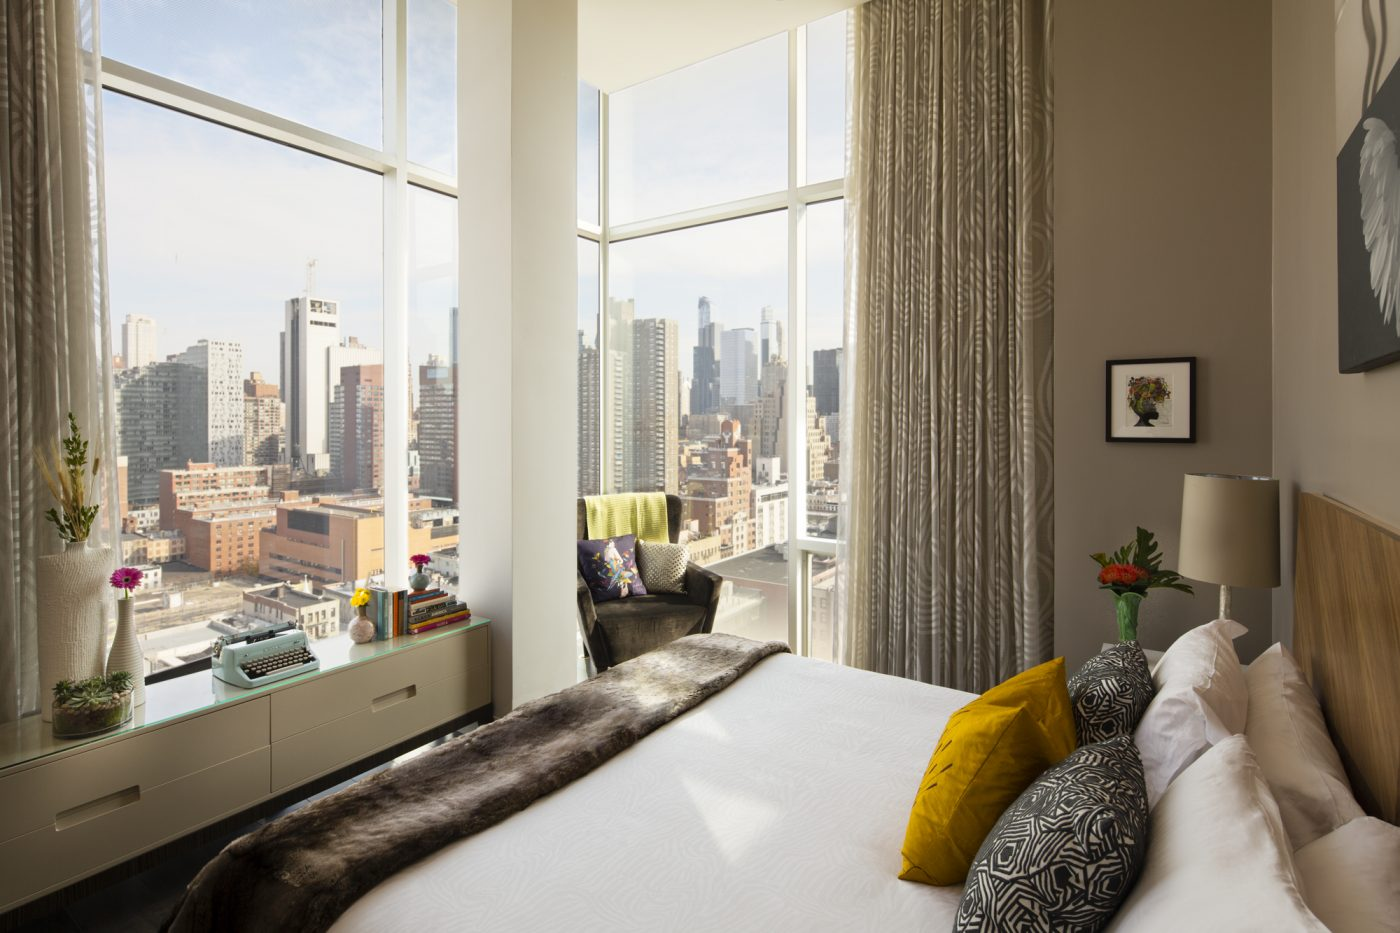 Eco-Friendly Hotels New York City: A room with a view at Ink 48